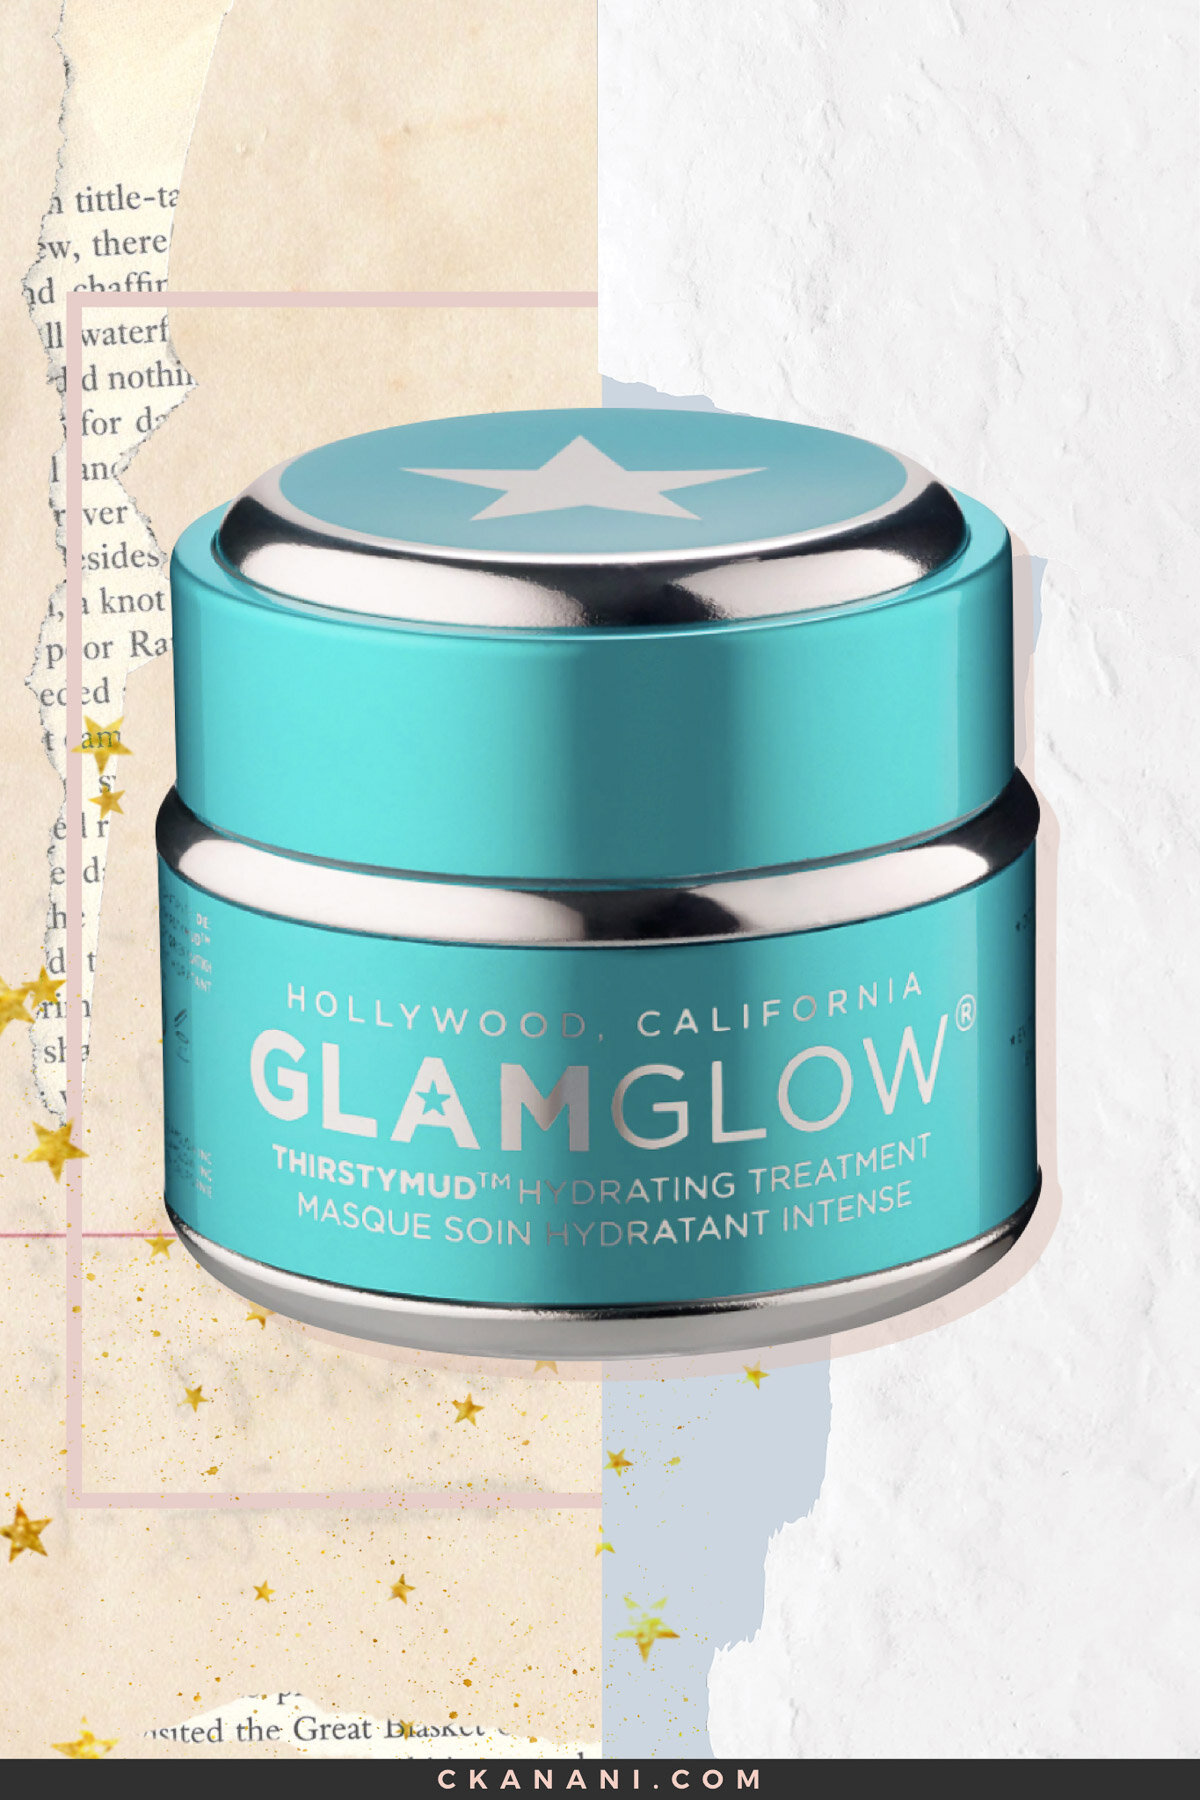 GLAMGLOW THIRSTYMUD™ Hydrating Treatment Mask: The Best Face Masks